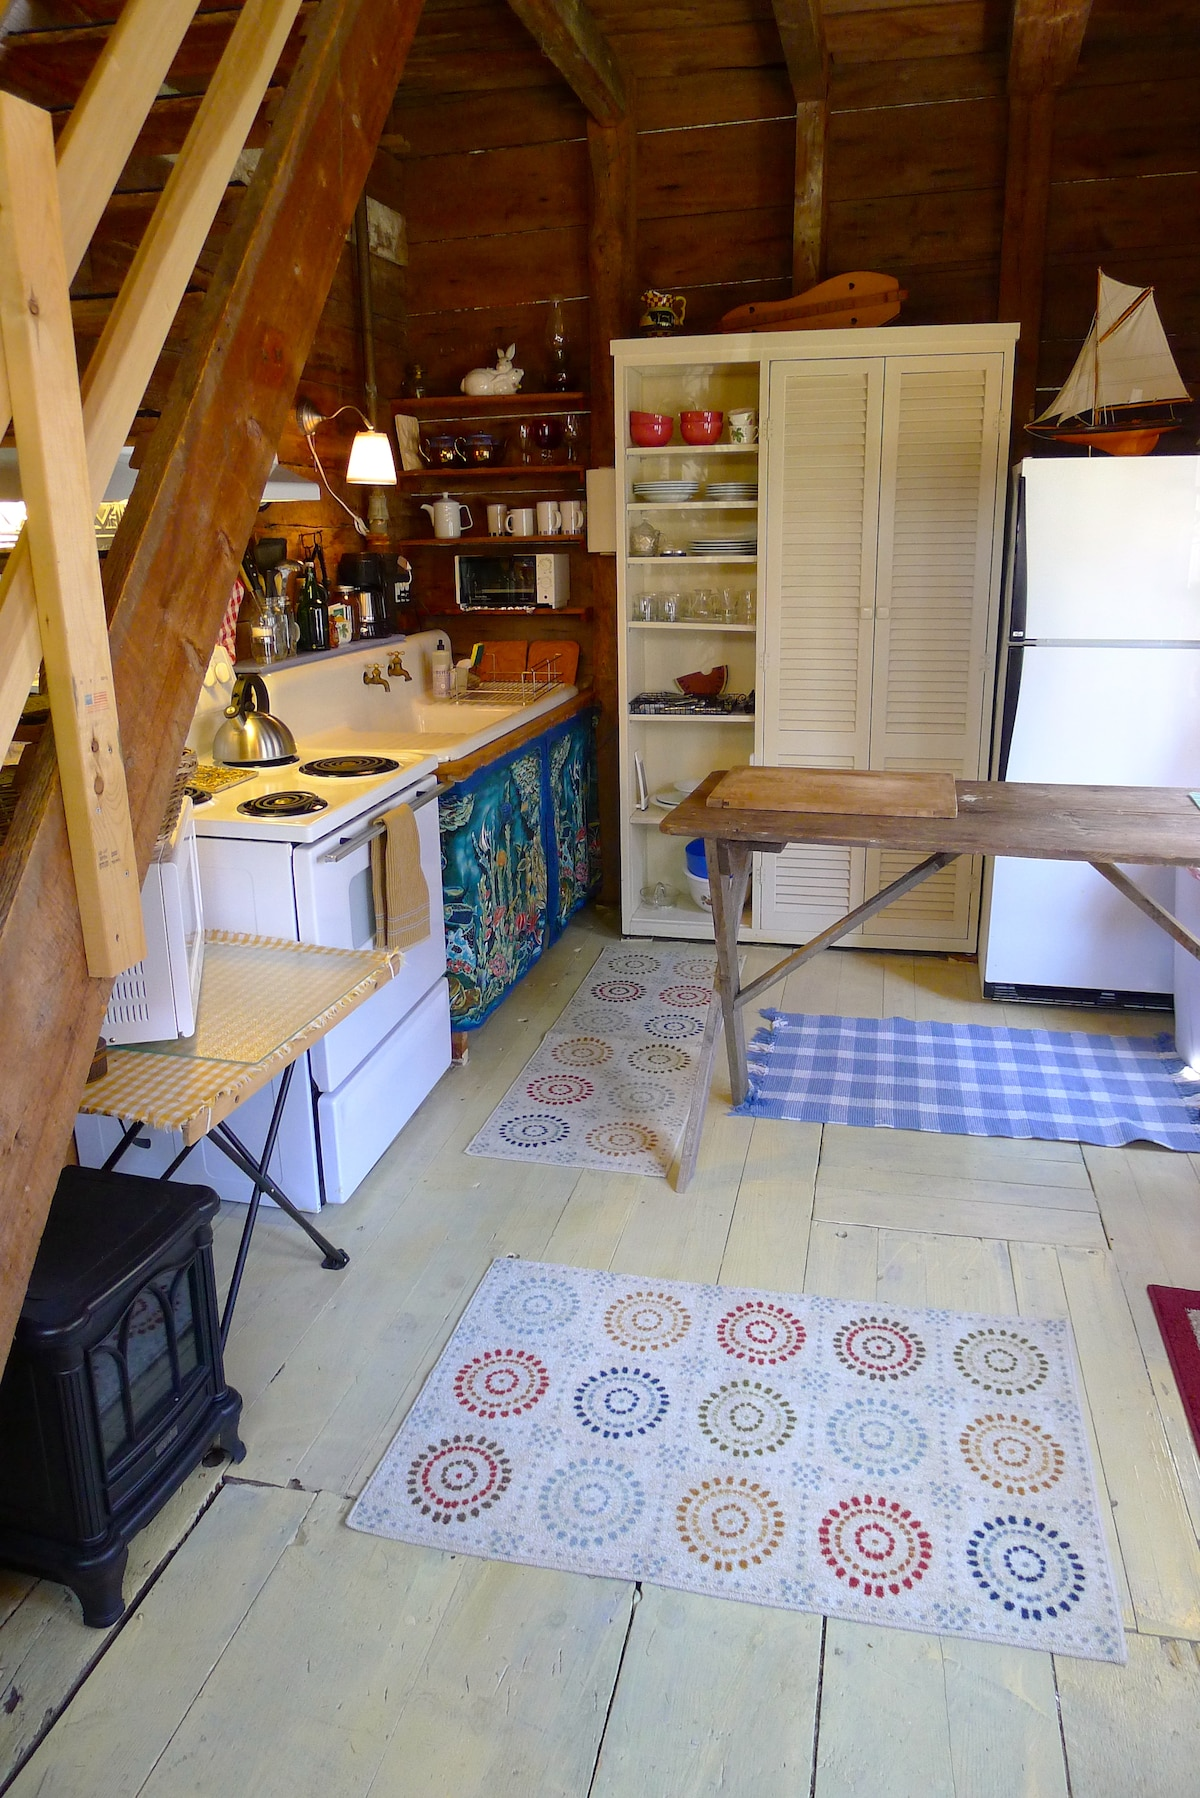 Fully equipped kitchen, outside grille and lobster pot available.